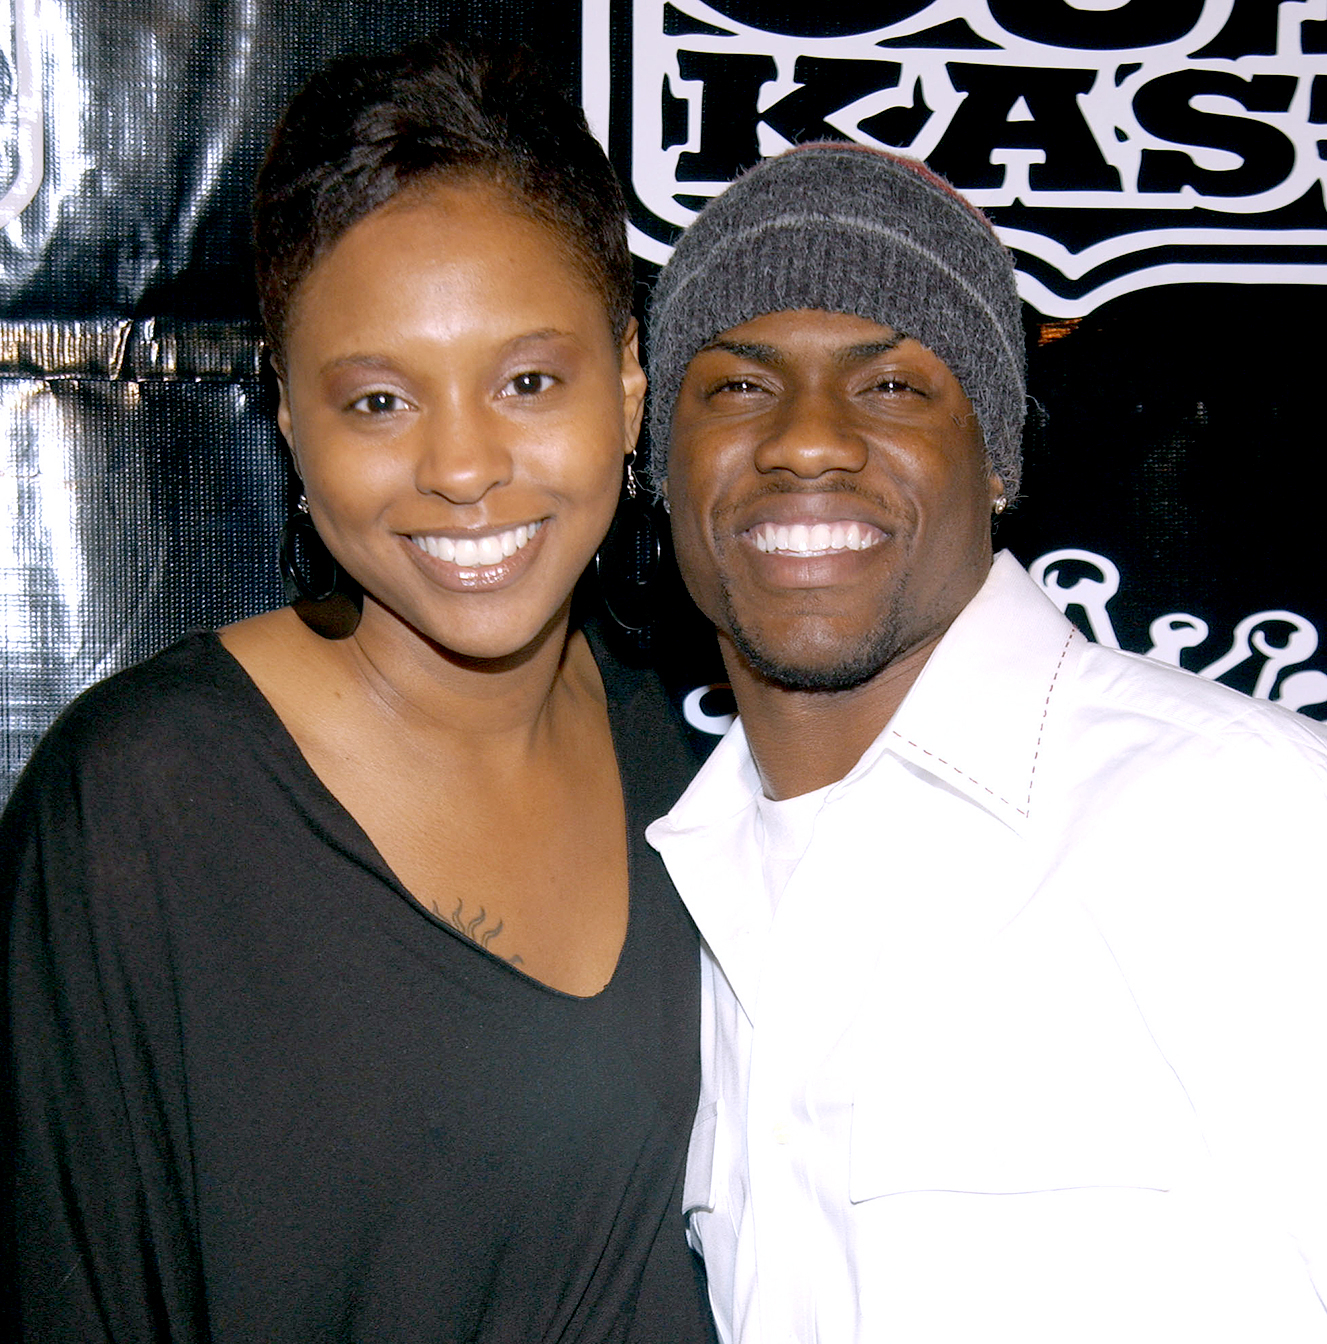 Kevin Hart and wife Torrei during Polaroid/OutKast 2004 Grammy Party.